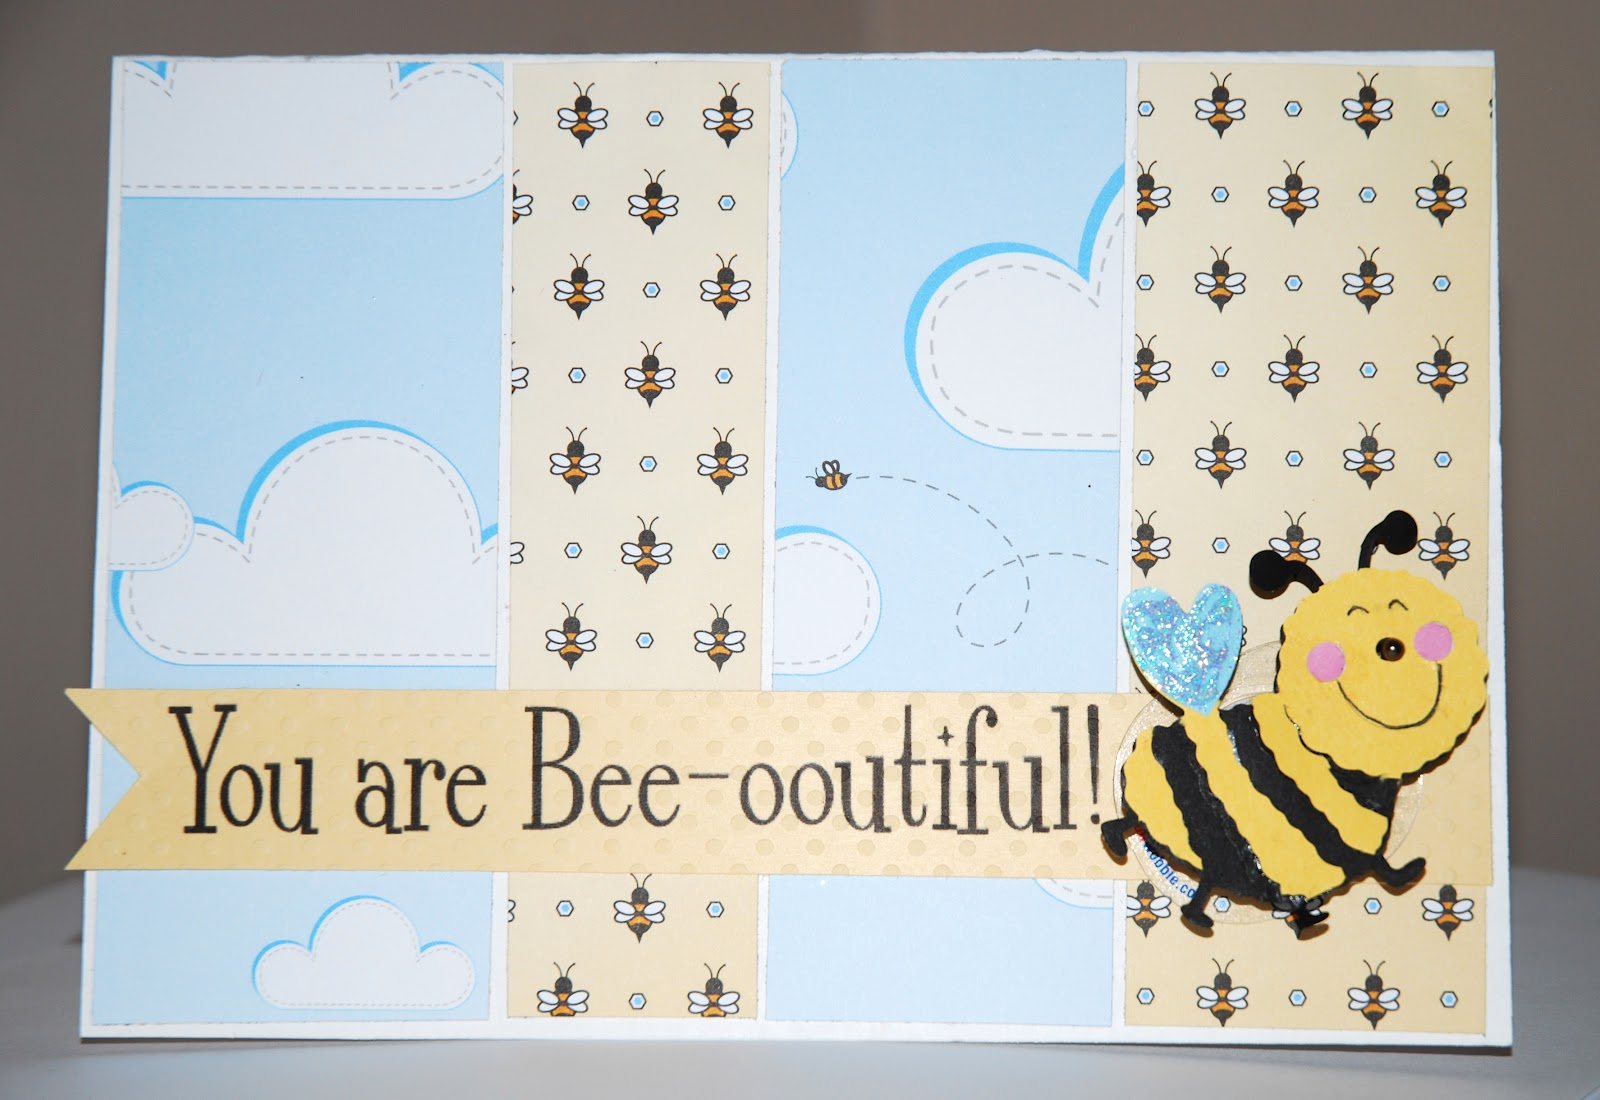 Scrapbook paper companies - To Make This Card I Used Stripes Of Designer Scrapbook Paper From One Of My Favorite Companies Nikki Sivils Scrapbooker In The Willow Bee Line